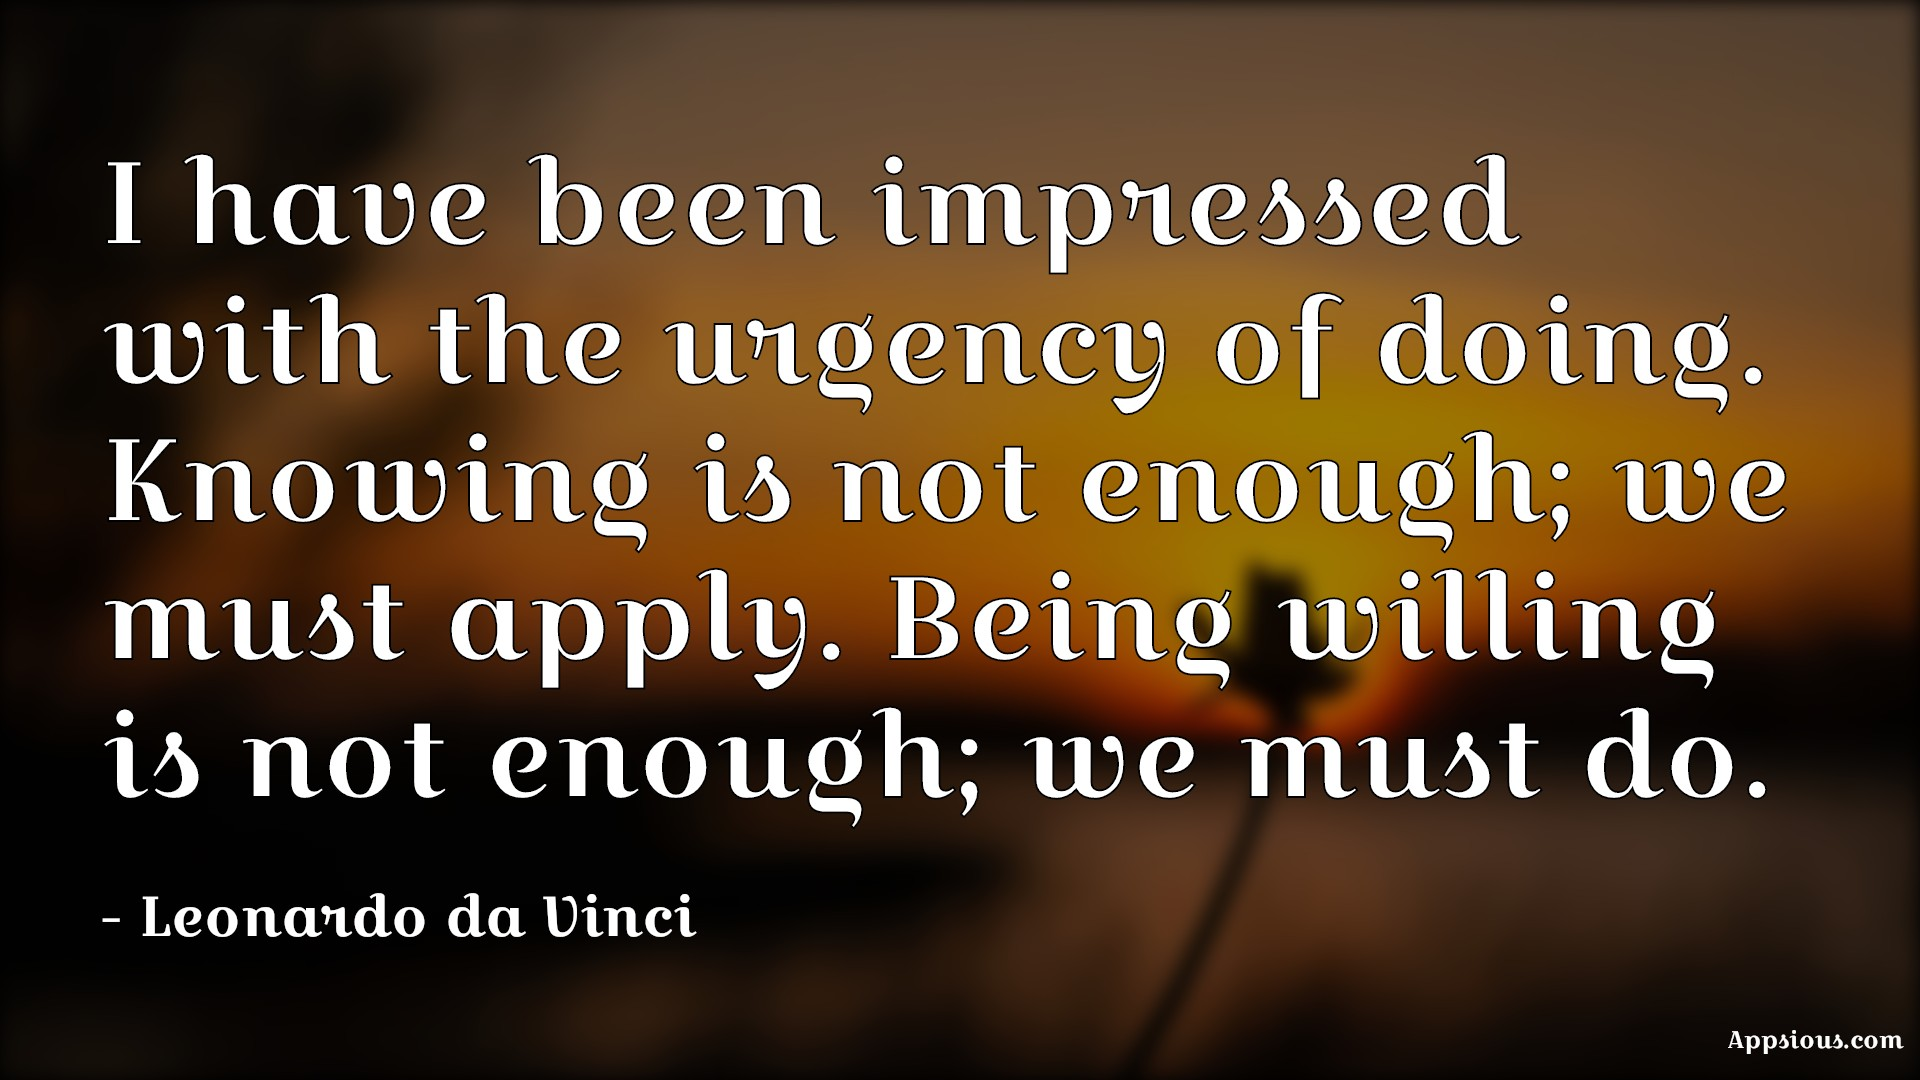 I have been impressed with the urgency of doing. Knowing is not enough; we must apply. Being willing is not enough; we must do.